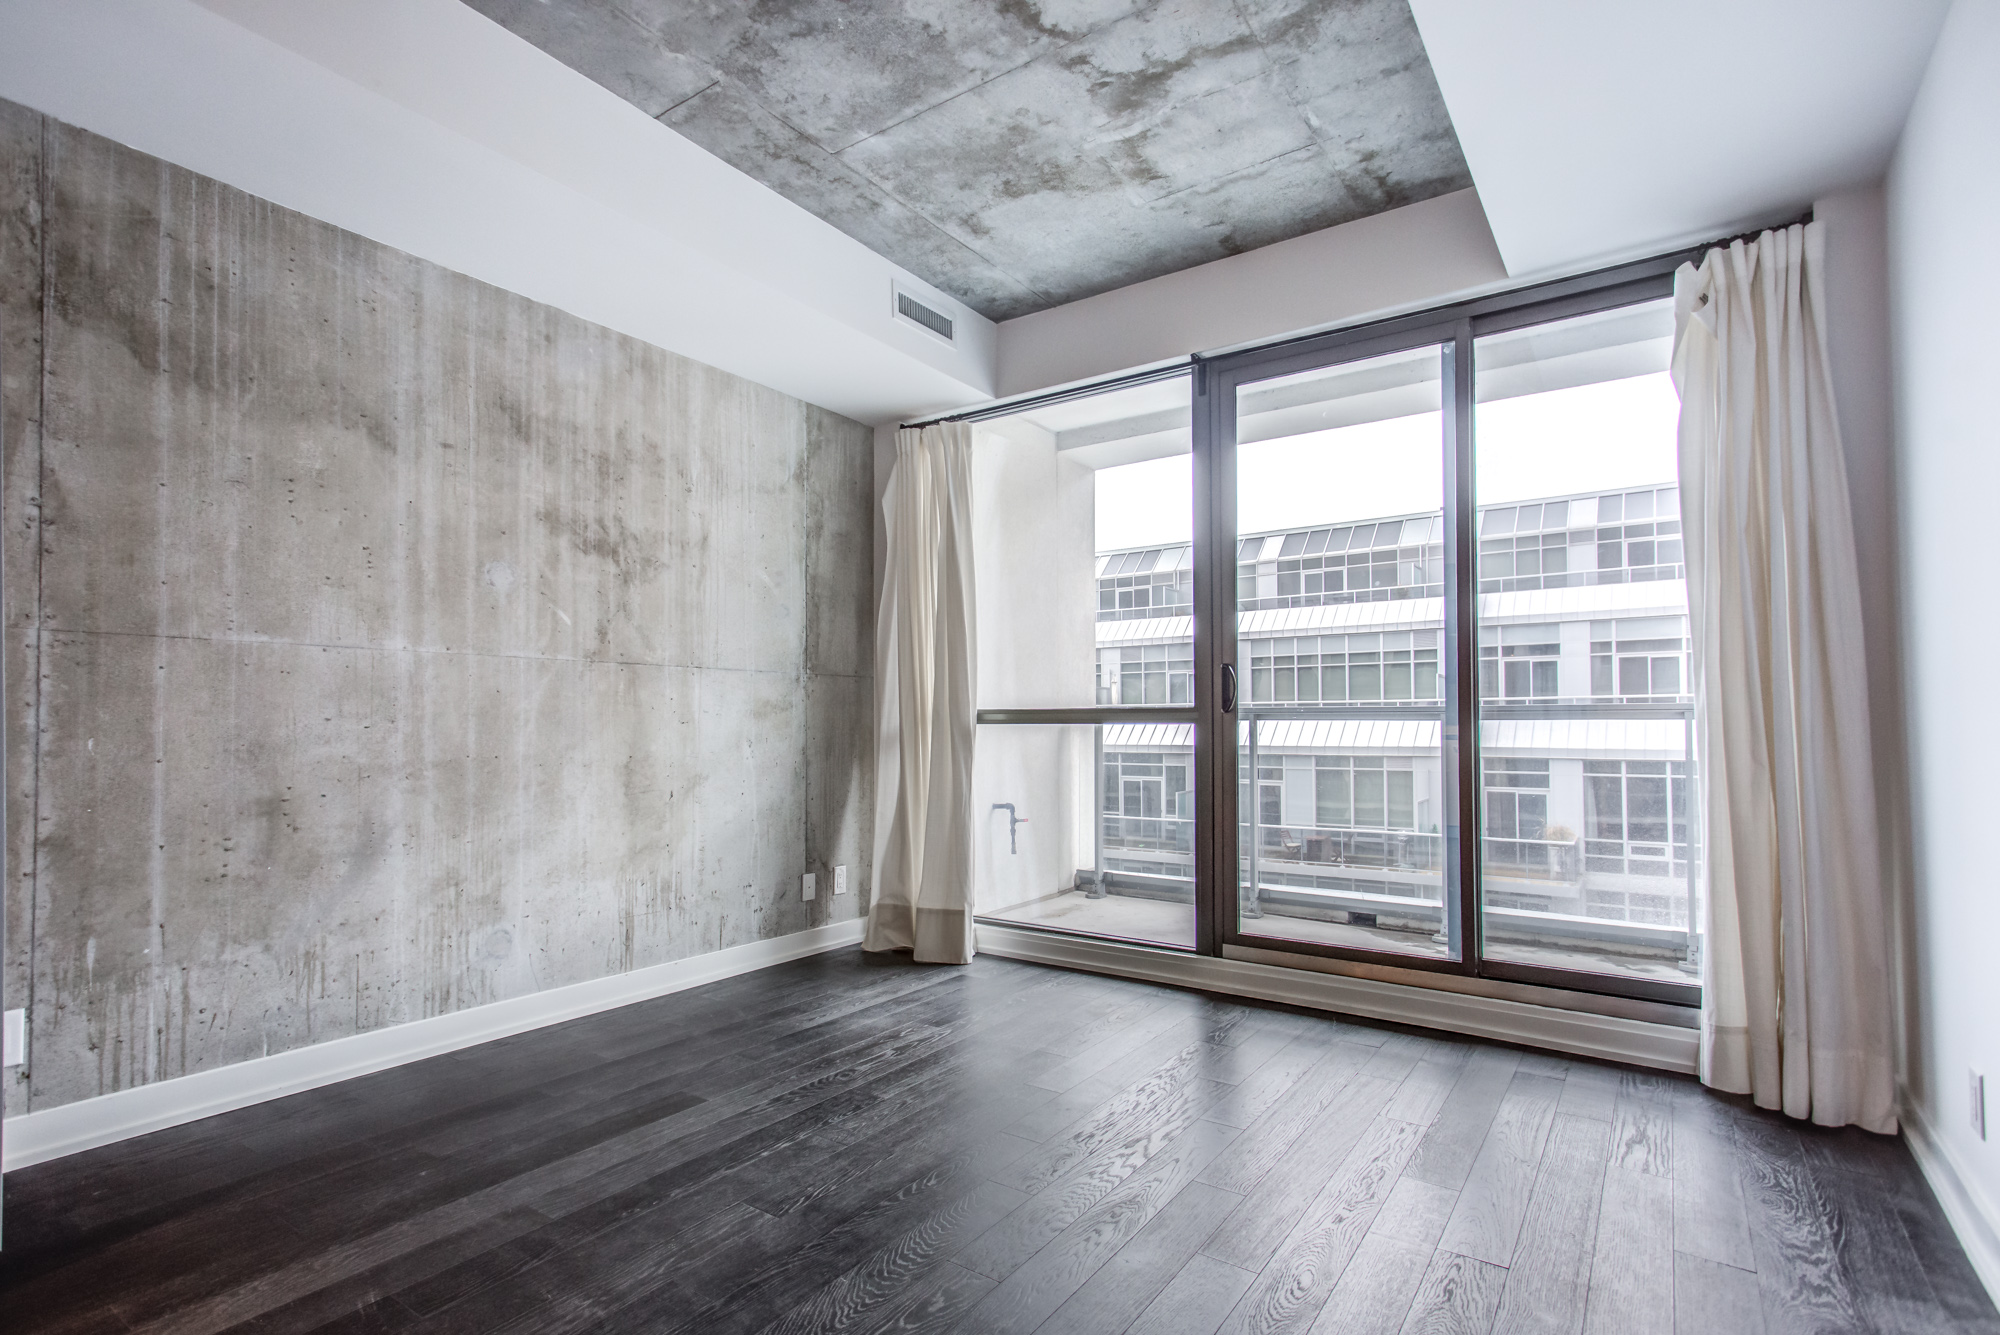 39 Brant St Unit 918, Brant Park Lofts, in Queen West with huge windows and exposed concrete wall and ceiling.